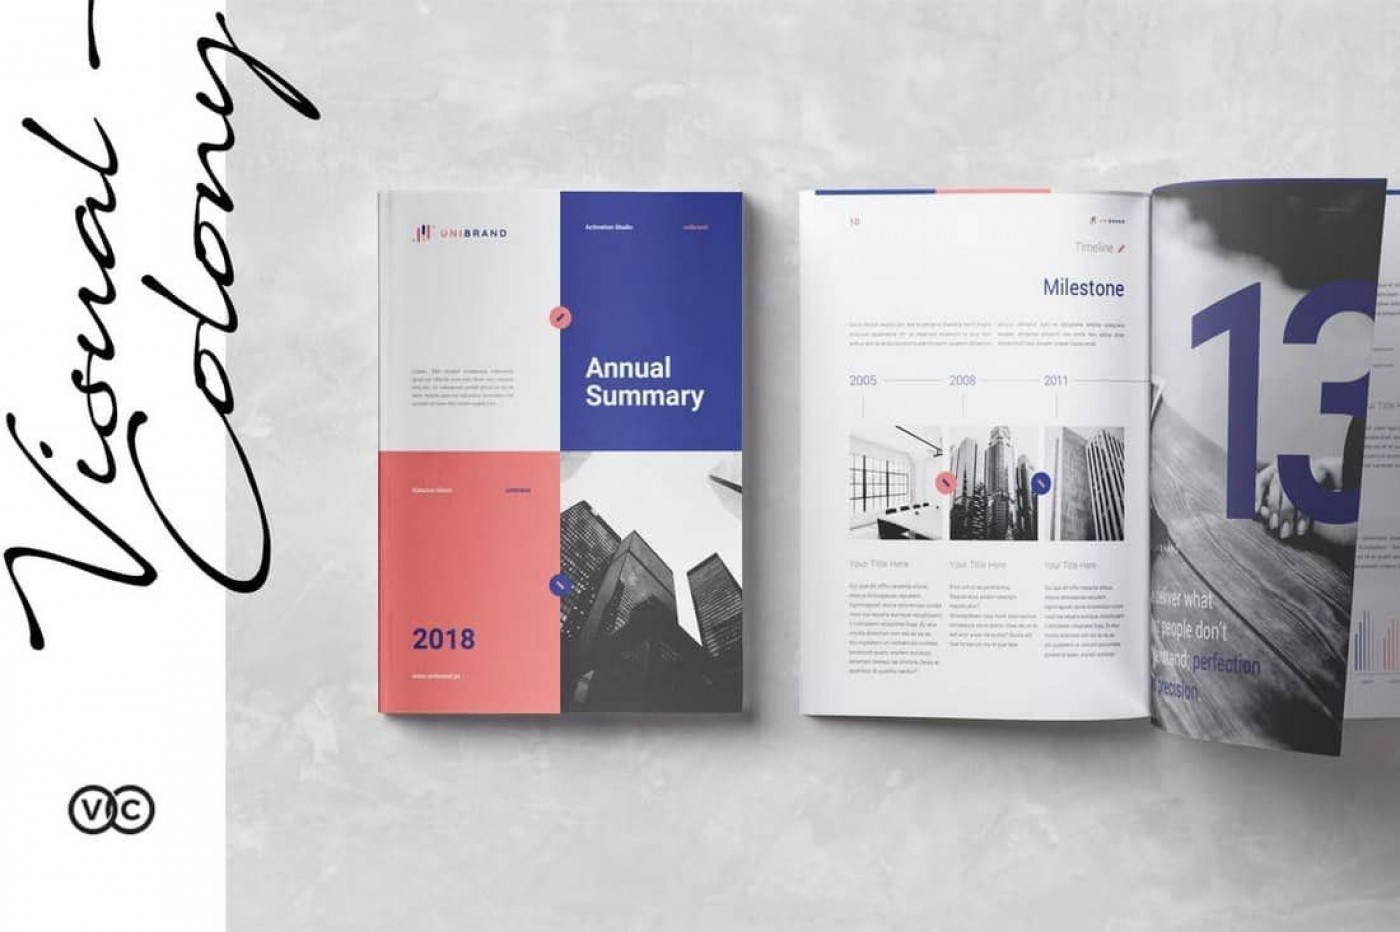 009 Astounding Annual Report Design Template Indesign High Definition  Free Download1400